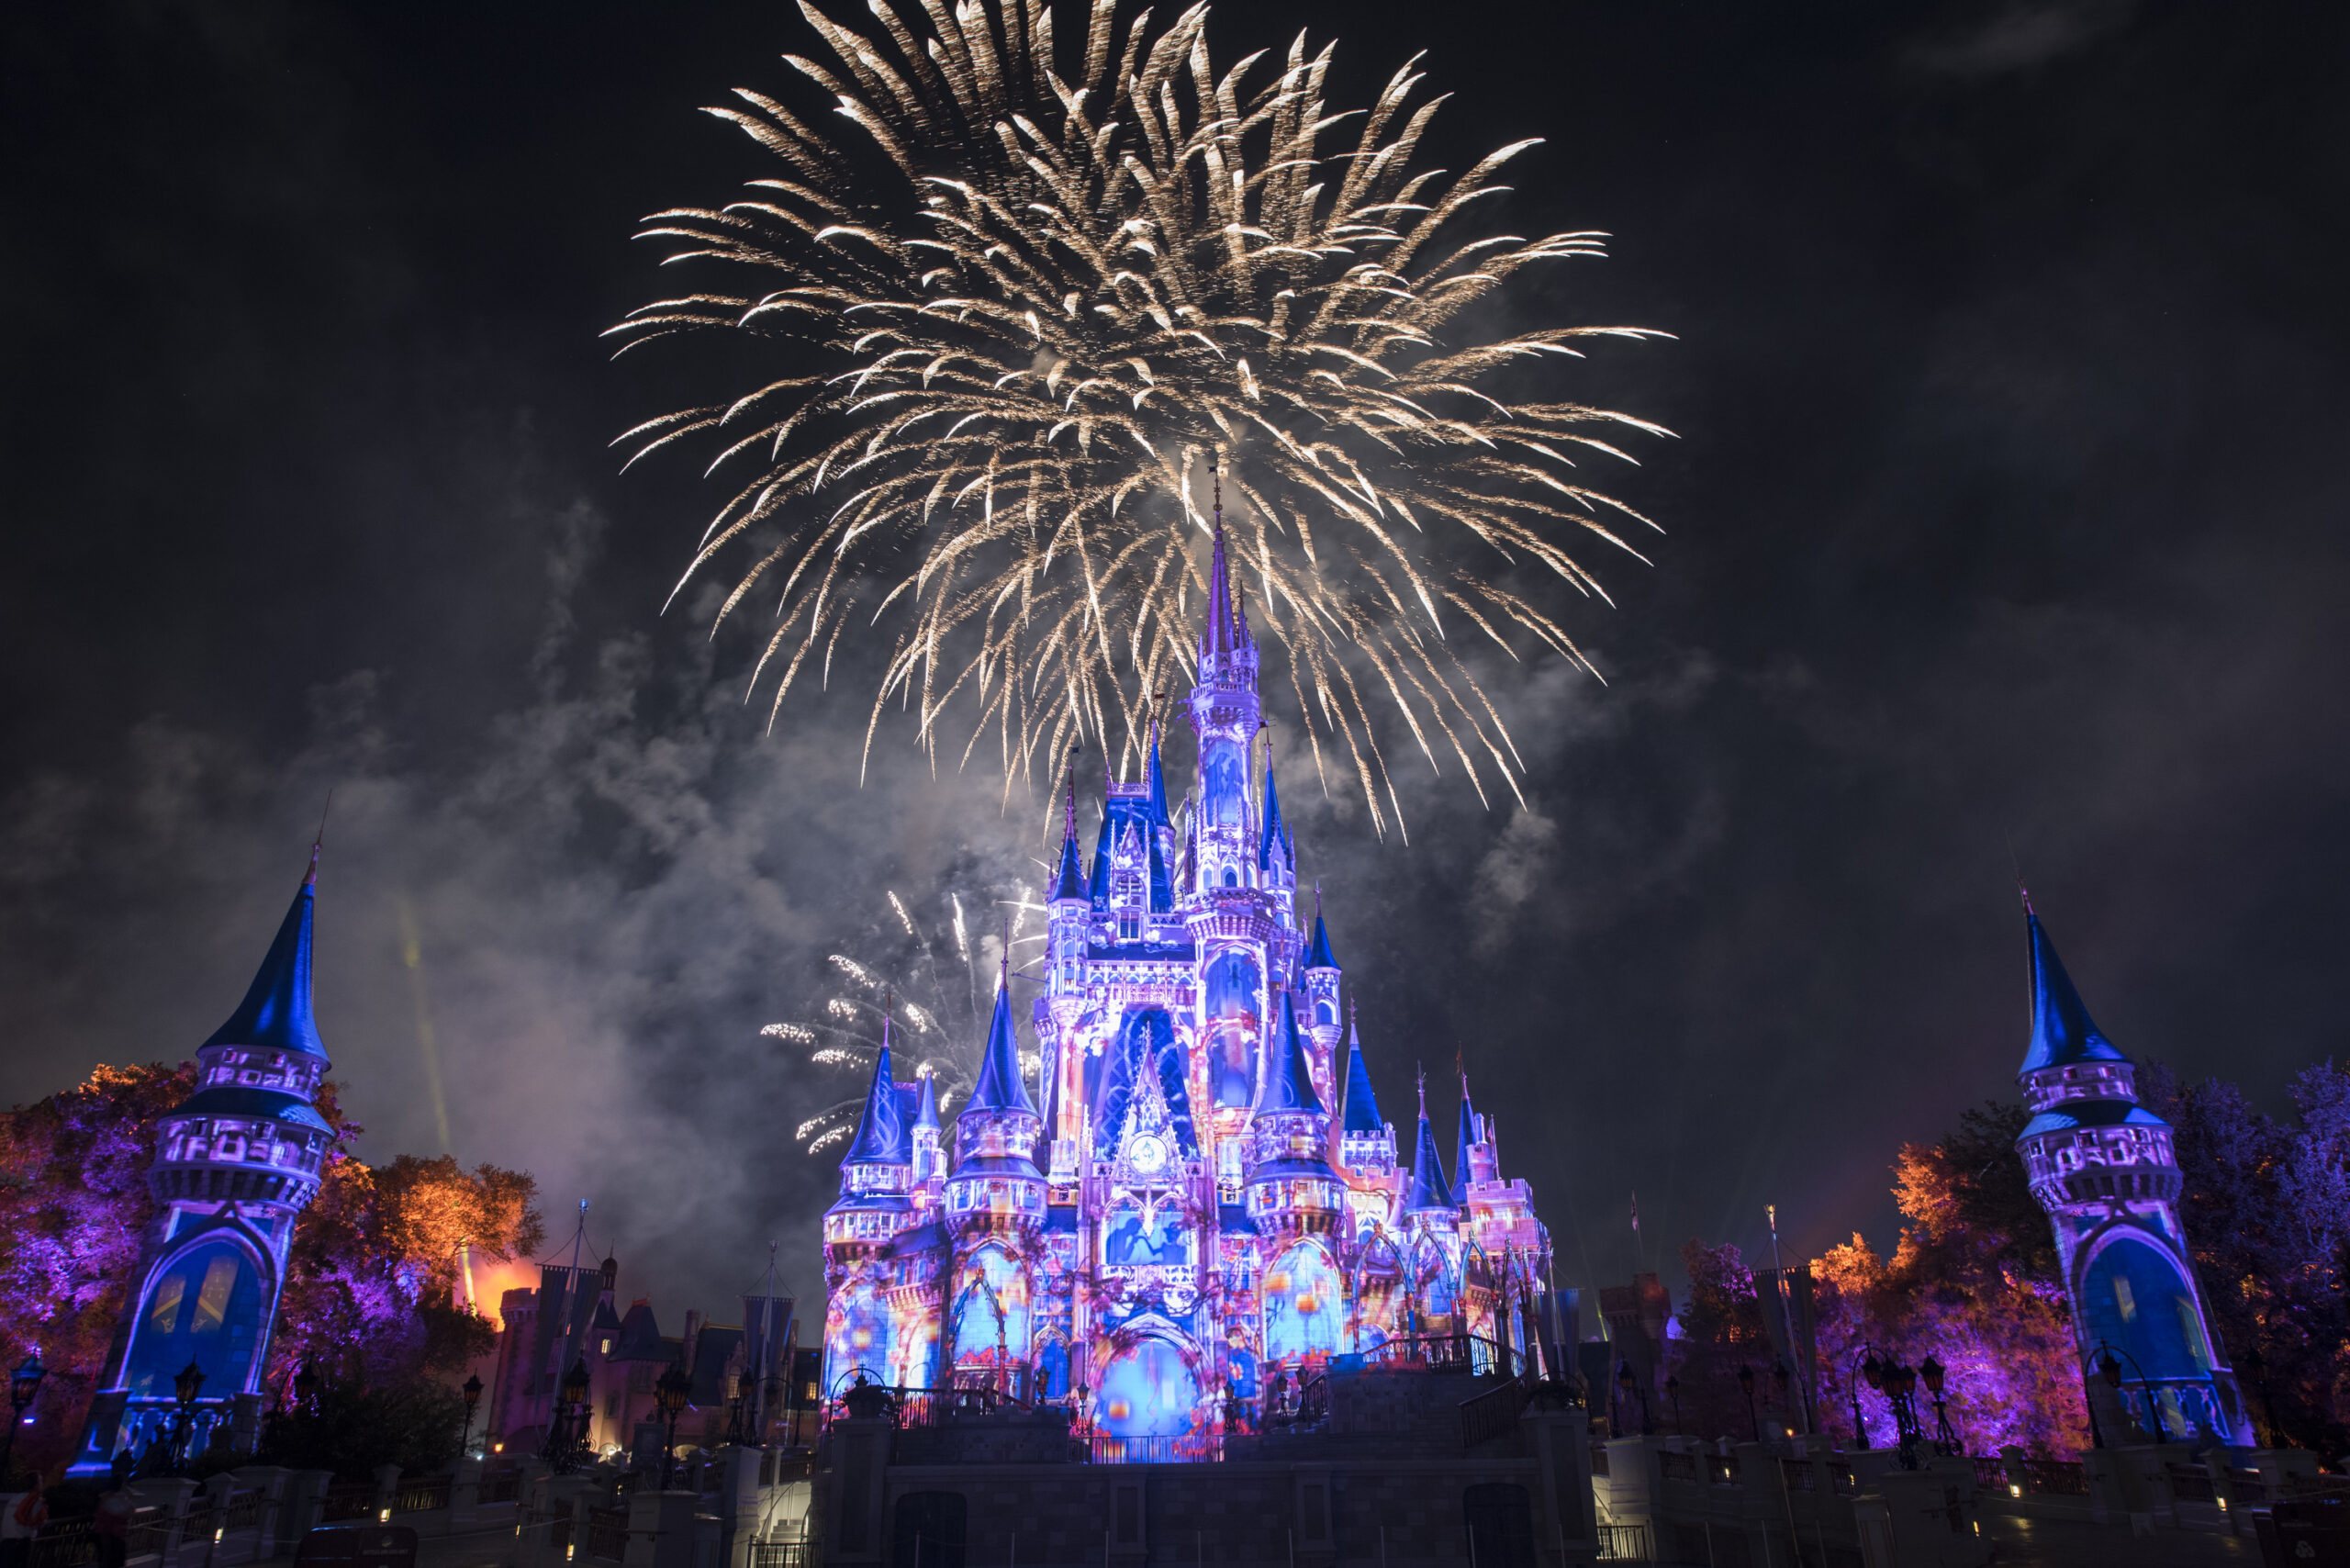 Fireworks in Disney's Magic Kingdom